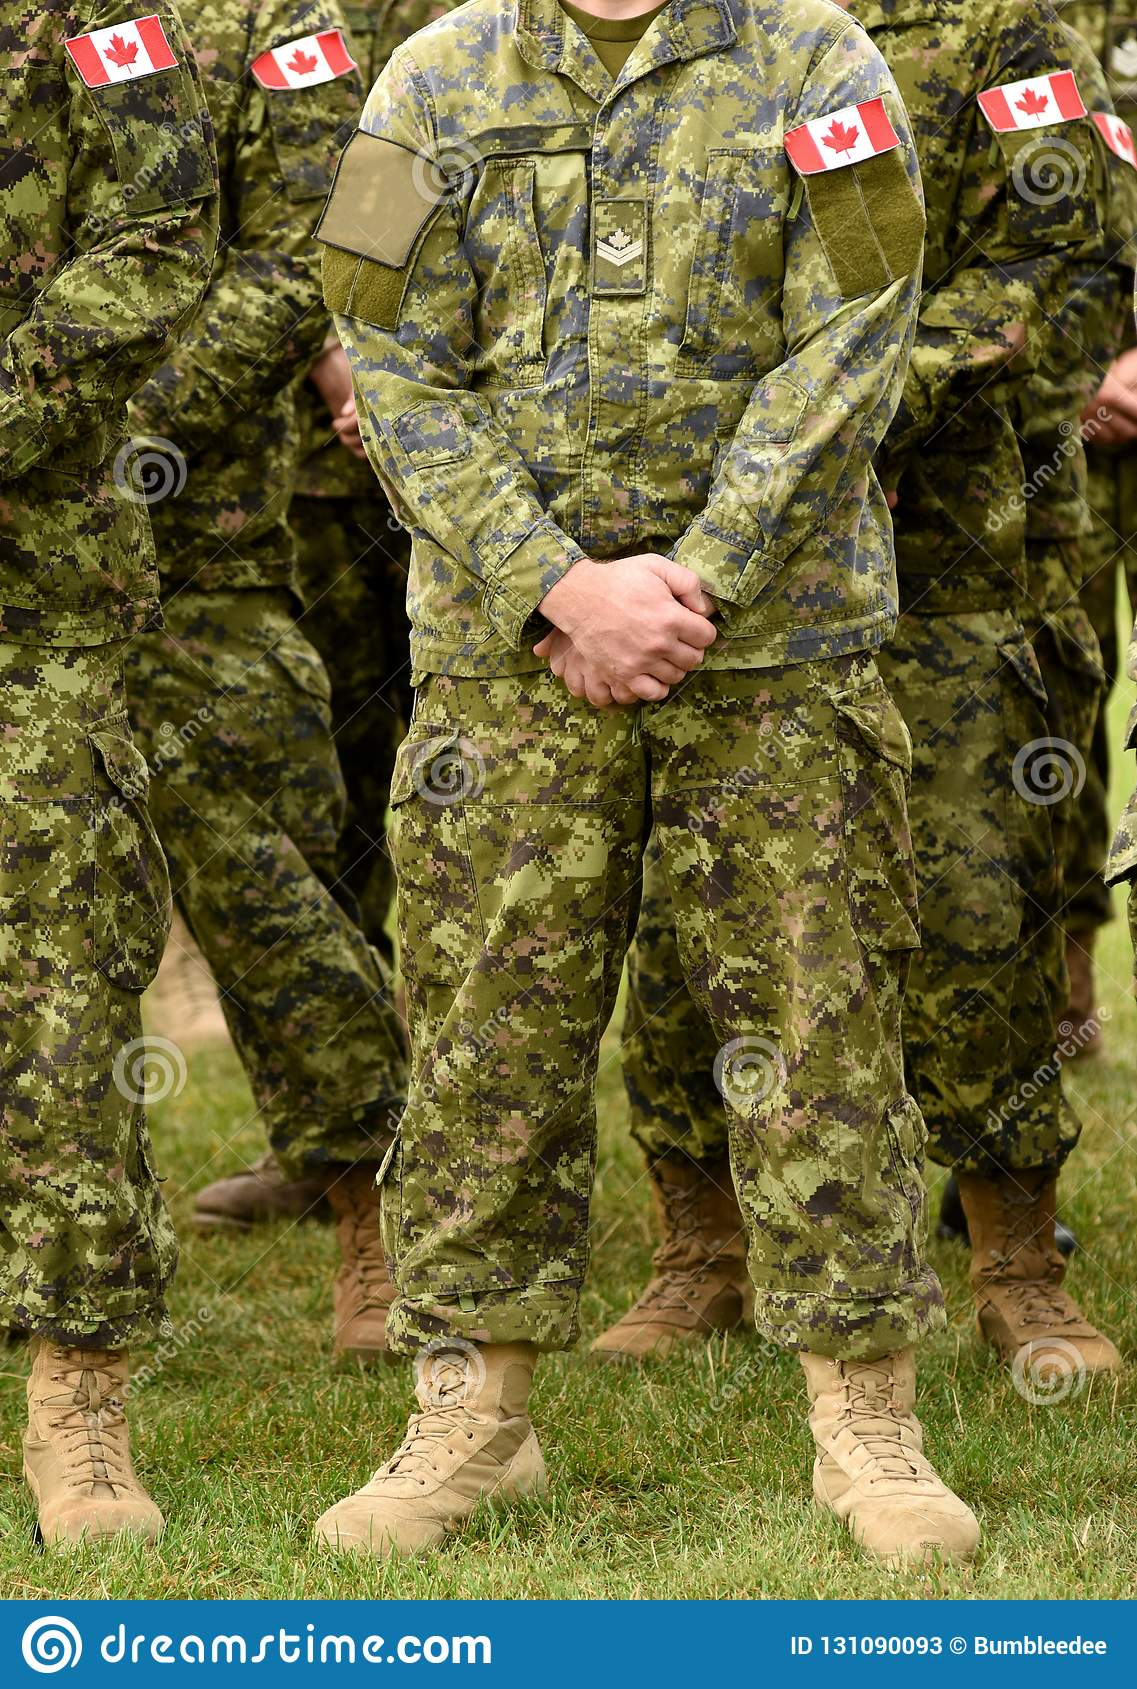 Canadian Troops  Canadian Army  Canada Flags On Soldiers Arm  Stock